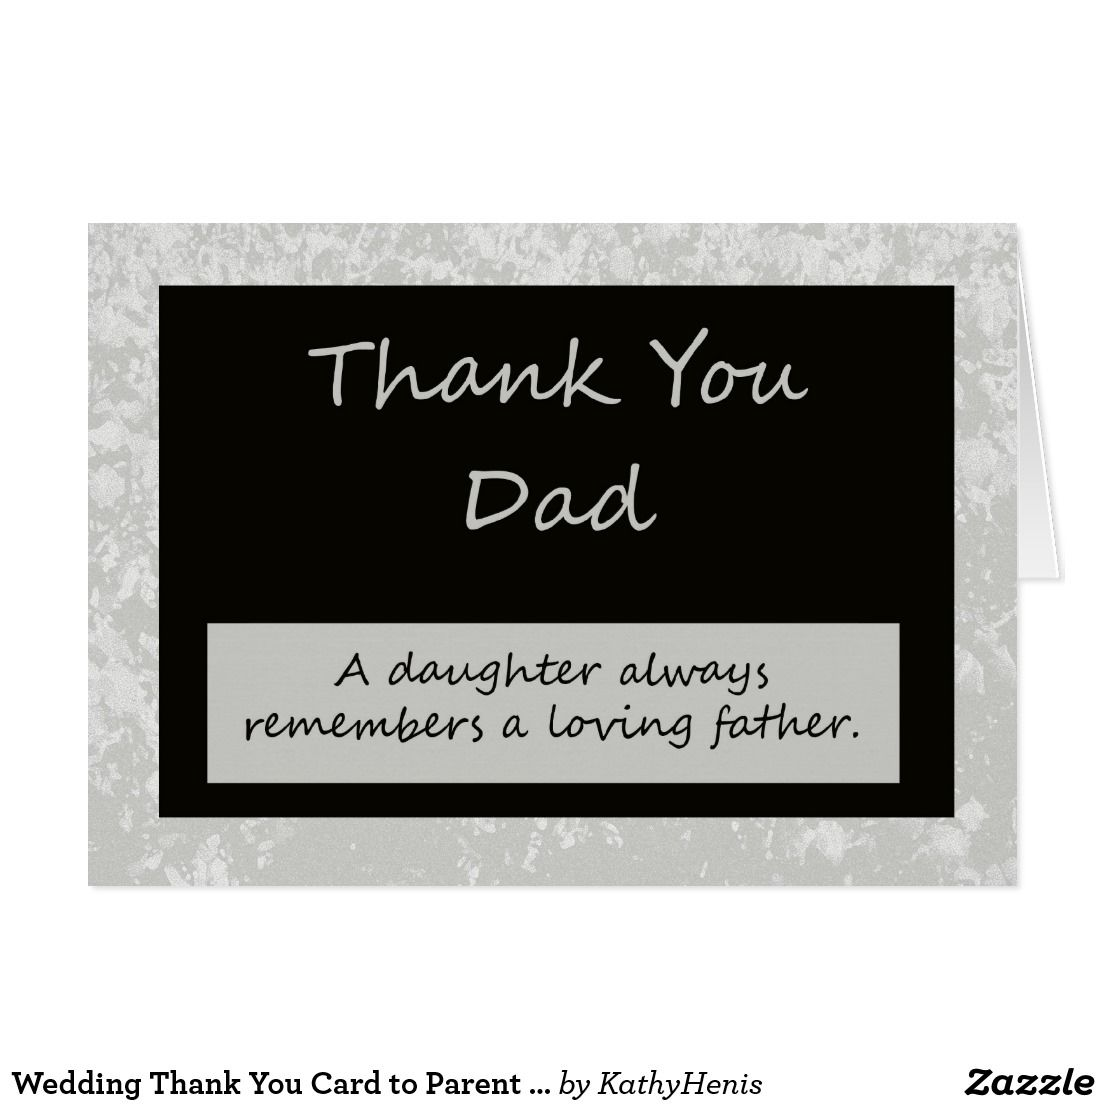 Wedding Gift For Boss: Wedding Thank You Card To Parent Dad